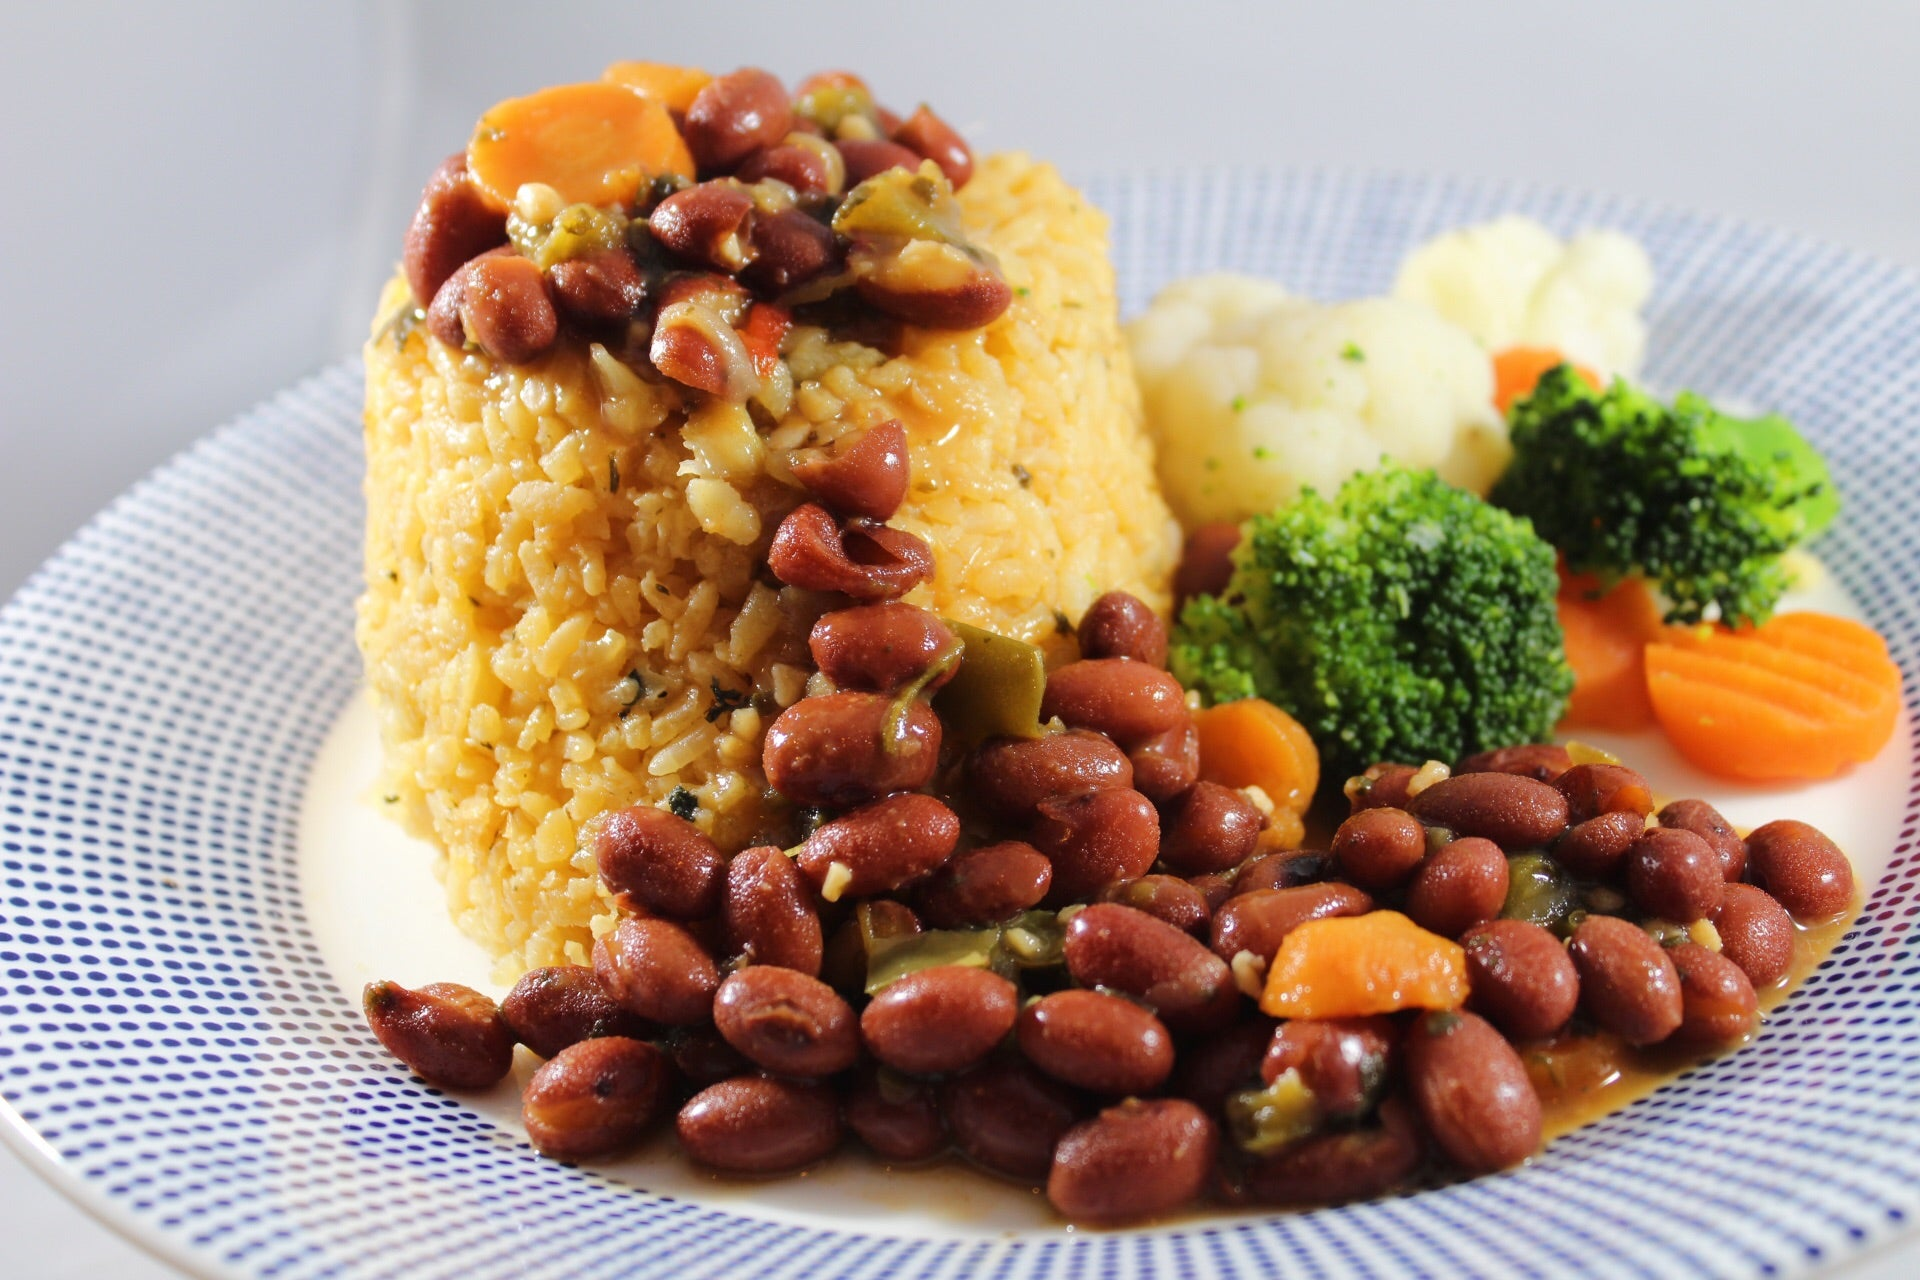 346 - Arroz con Bacalao y Habichuelas Coloradas / Rice with Cod and Red Beans